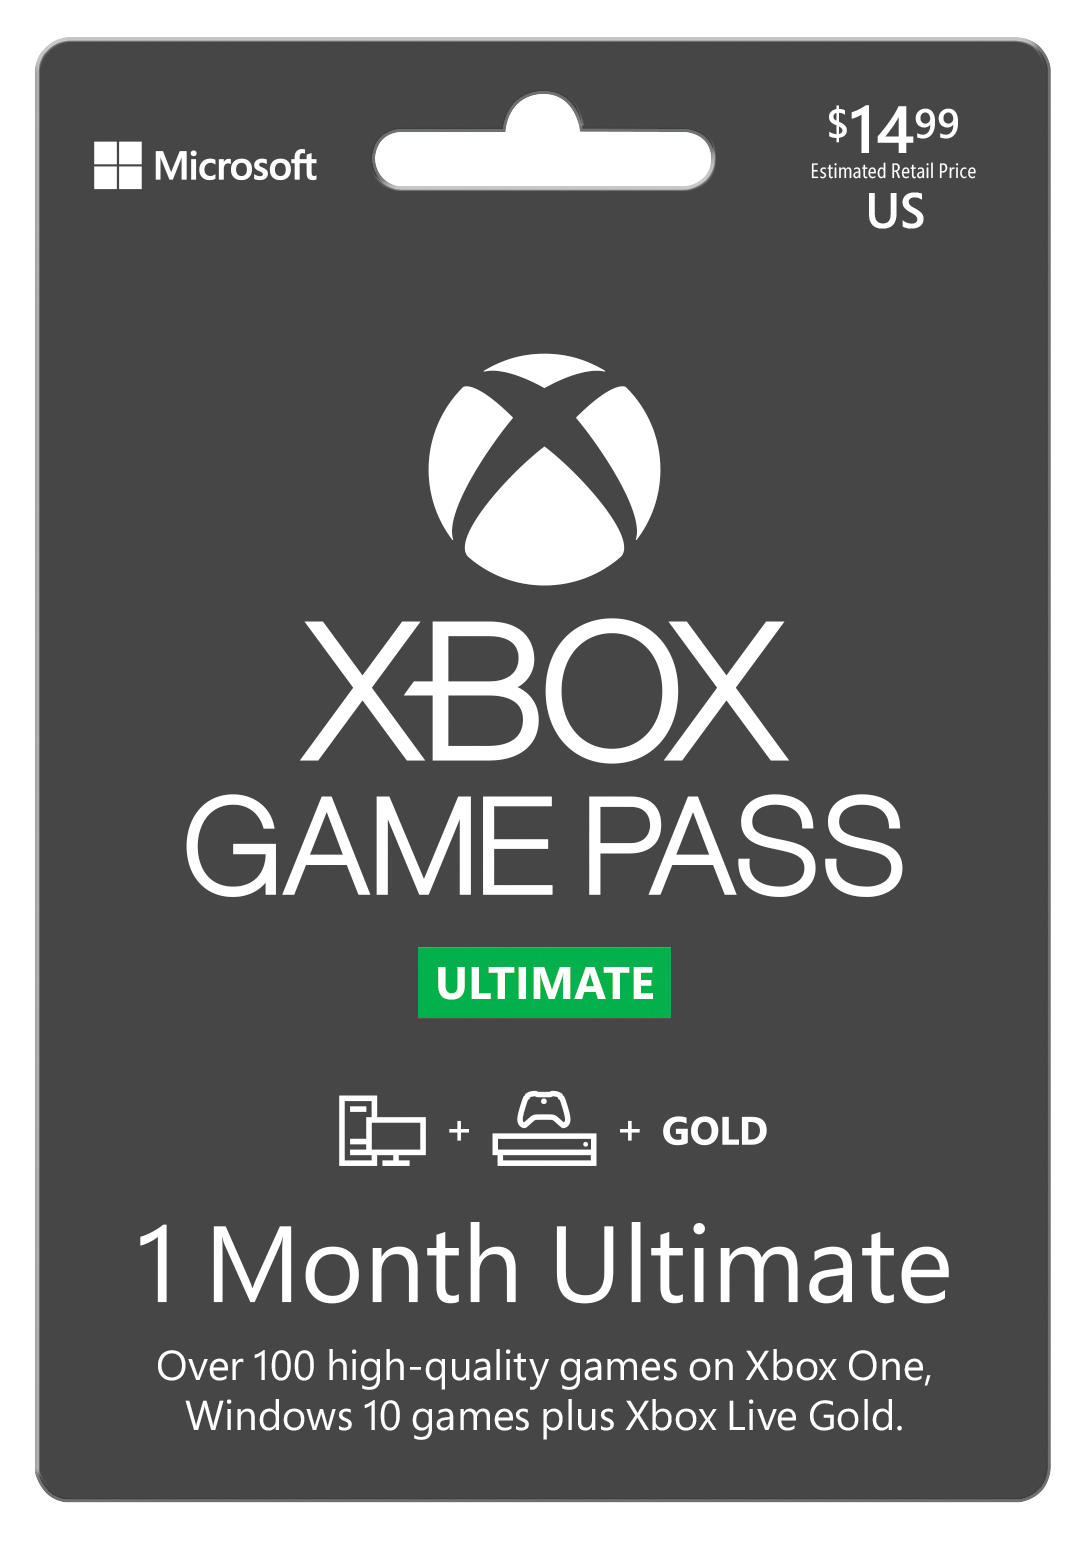 Xbox_Game_Pass_Ultimate_M6NS_1_Month_14_99_US_052119.png